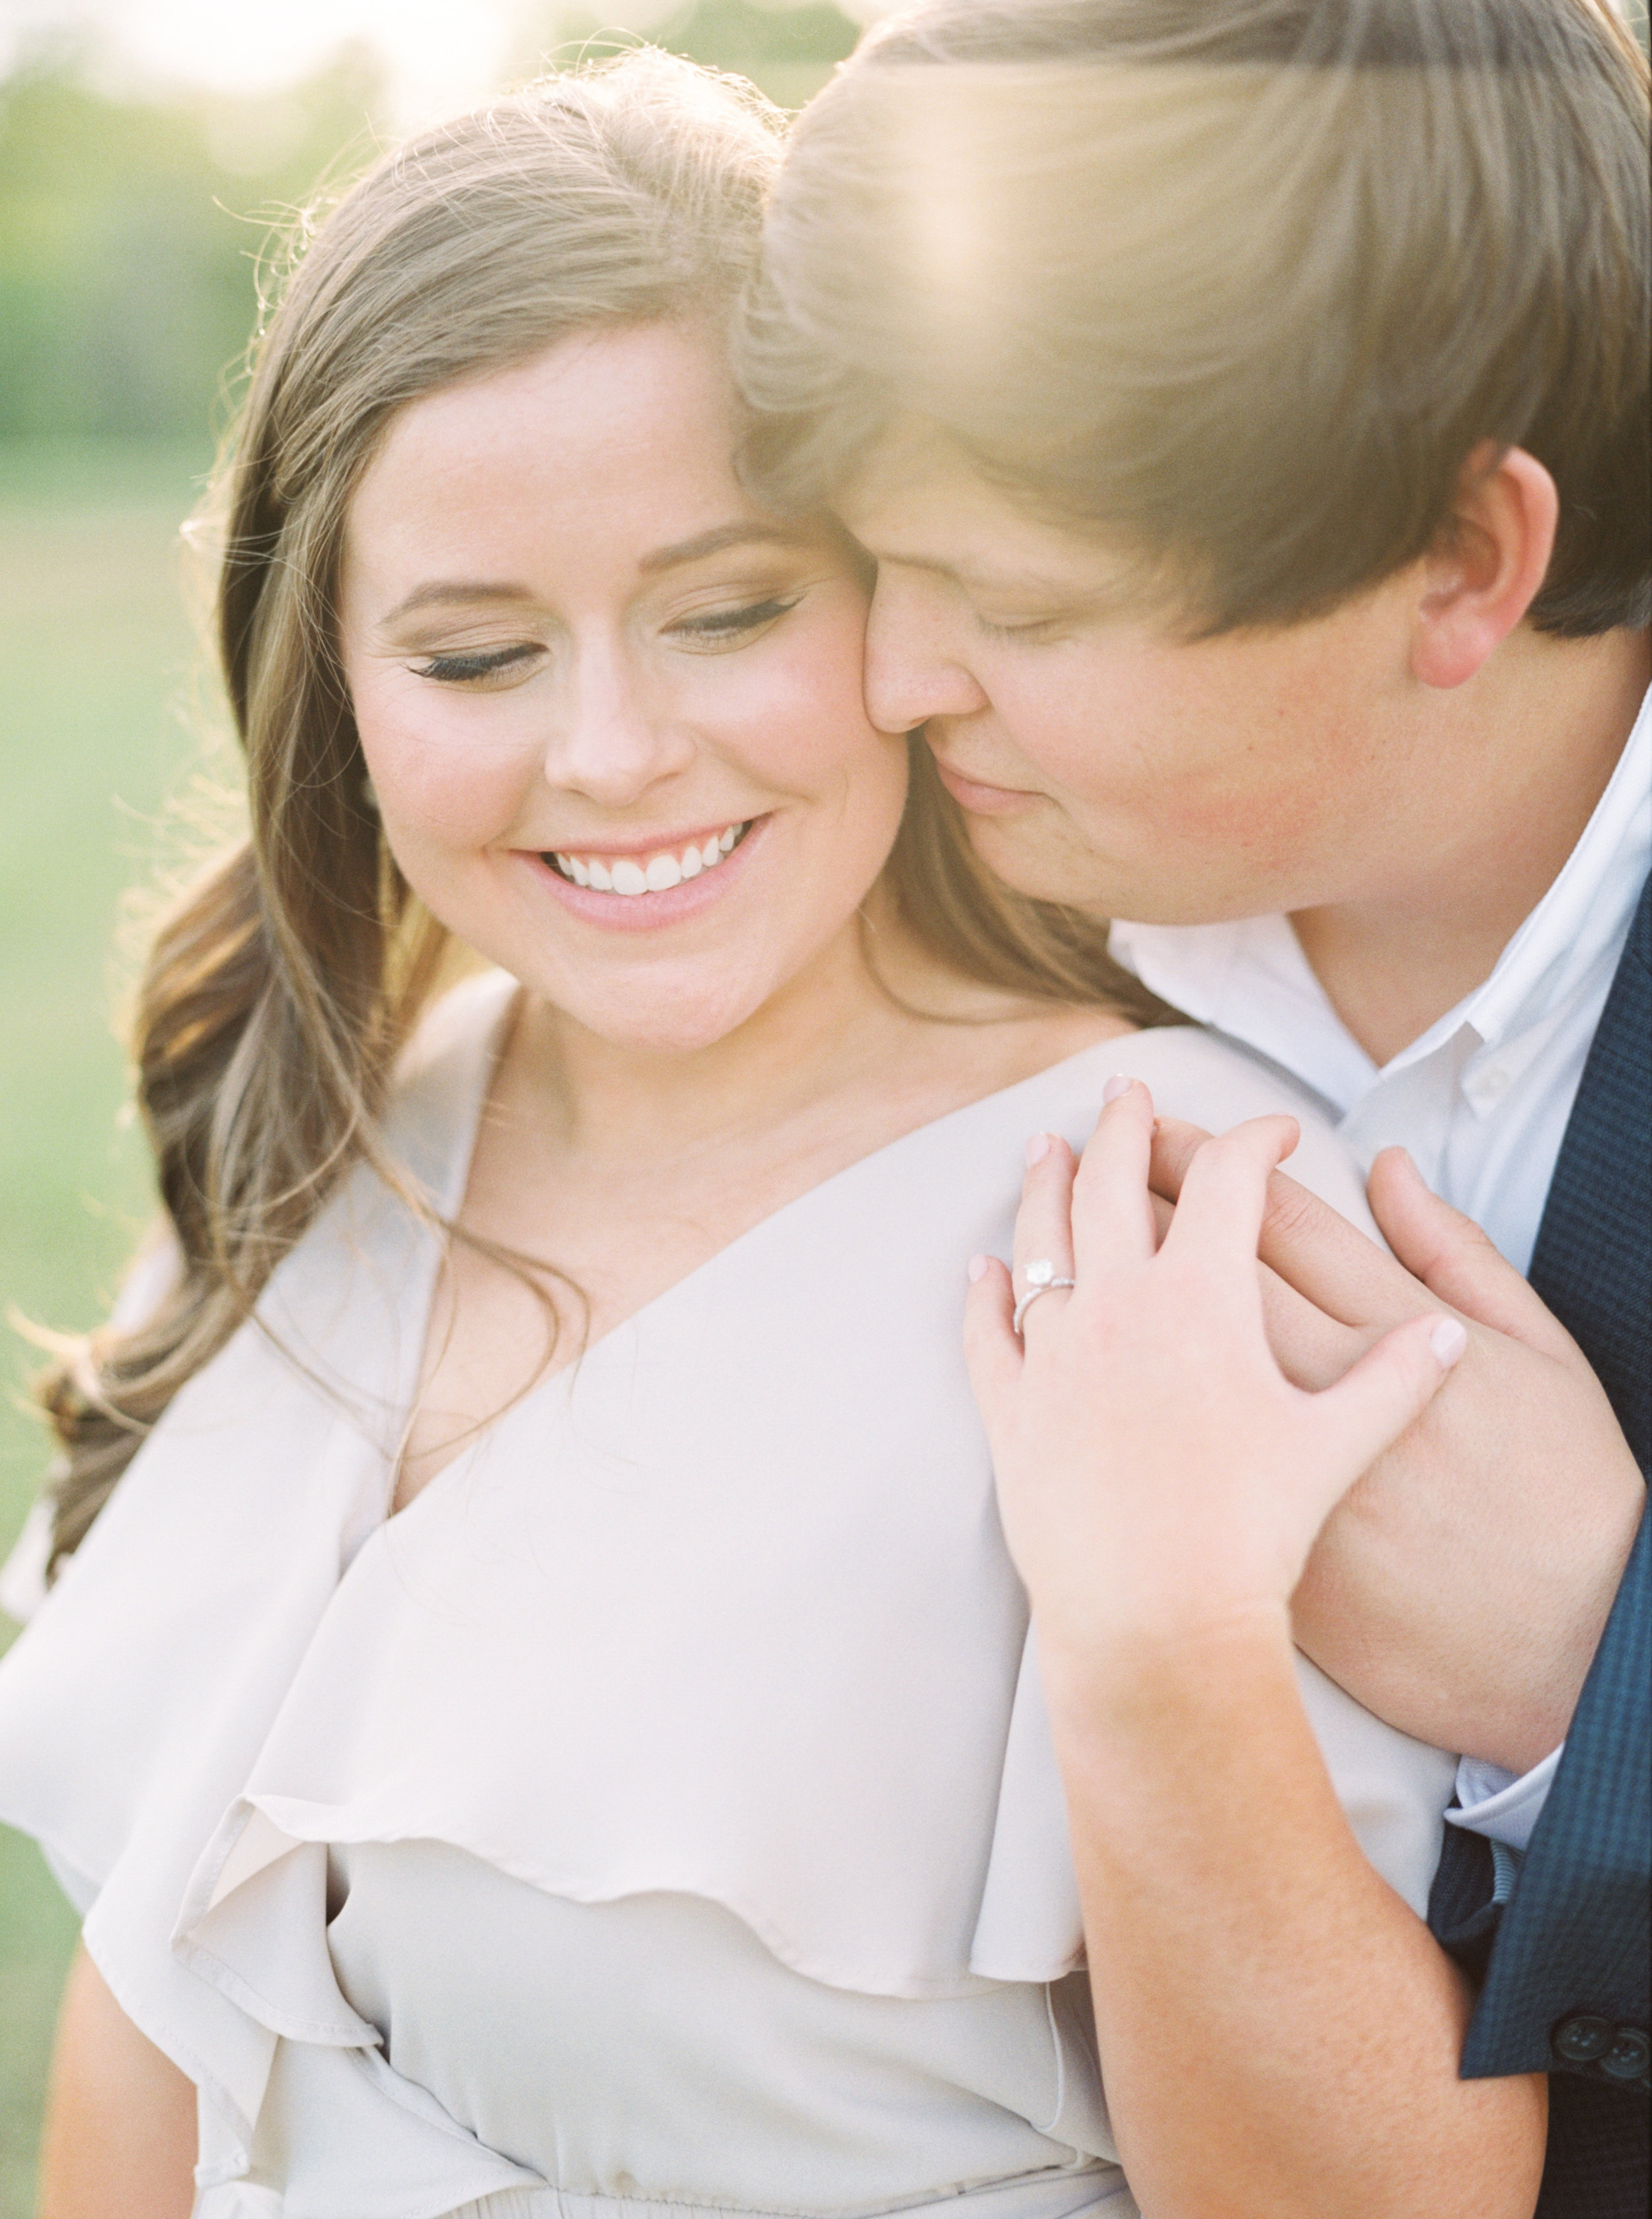 Landon_Grant_Carter_Film_Engagement_Session_Lake_Fallen_Photography_Columbus_Georgia-16.JPG